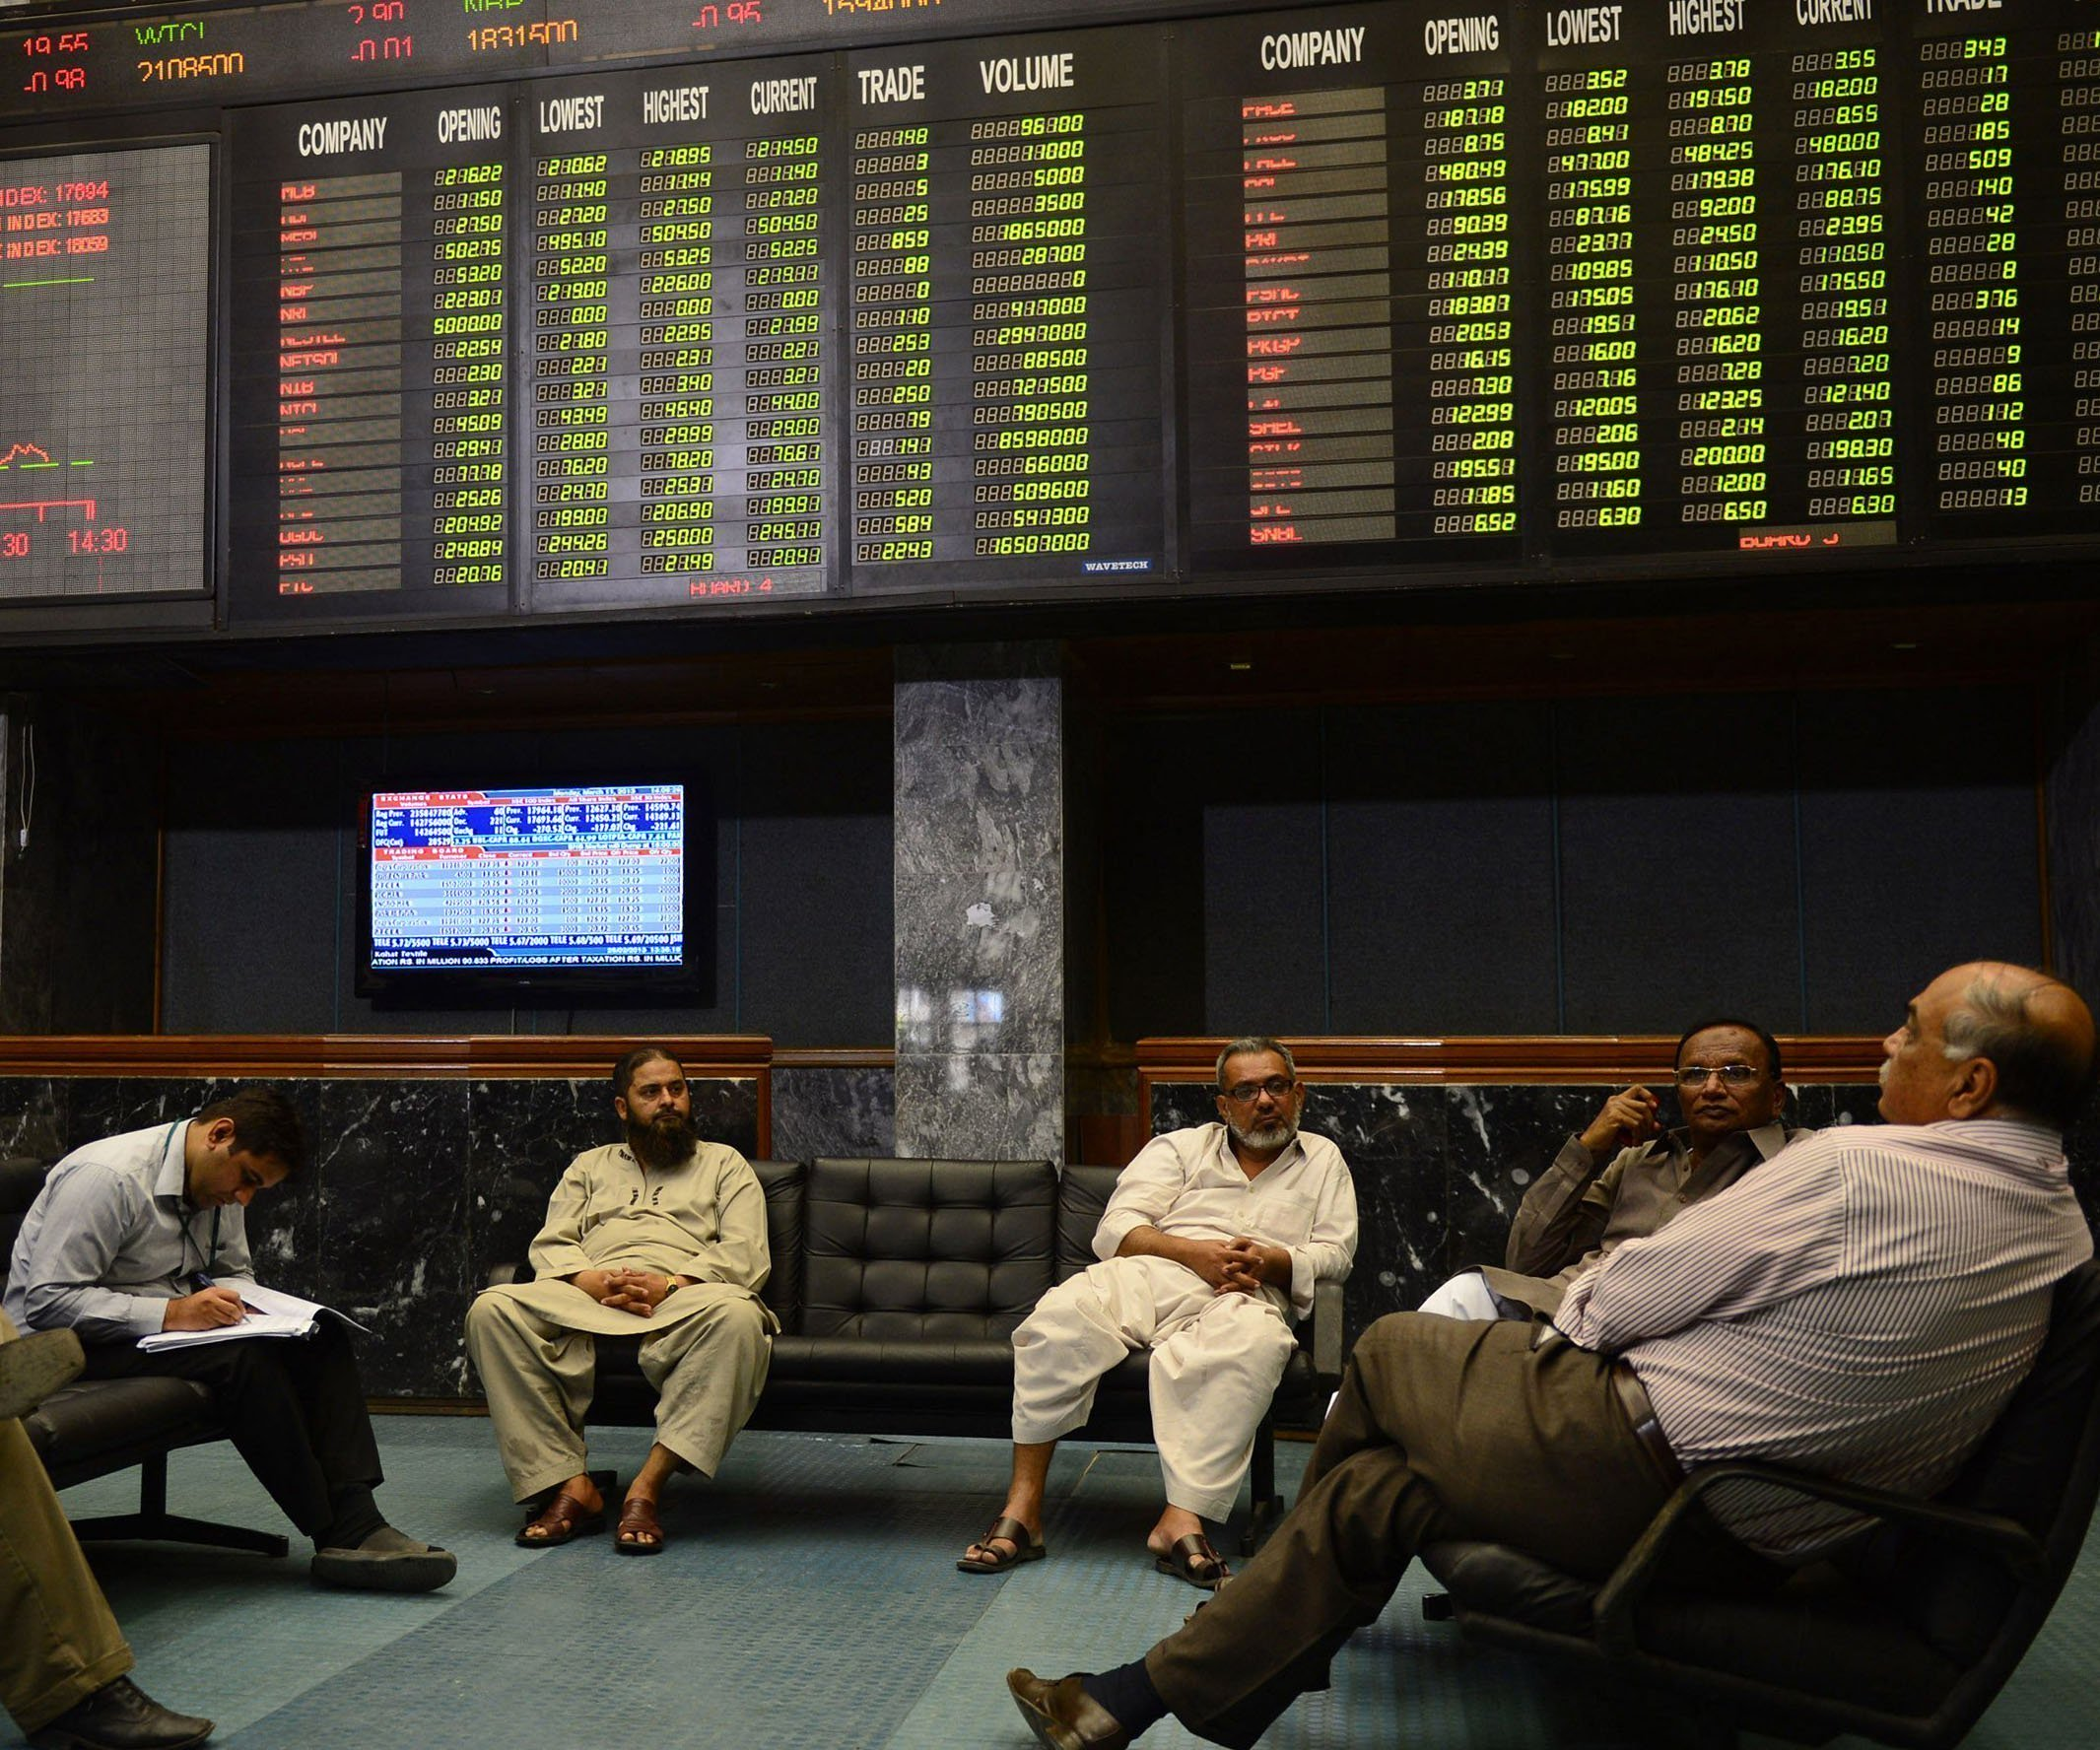 market watch stocks soar after policy rate cut